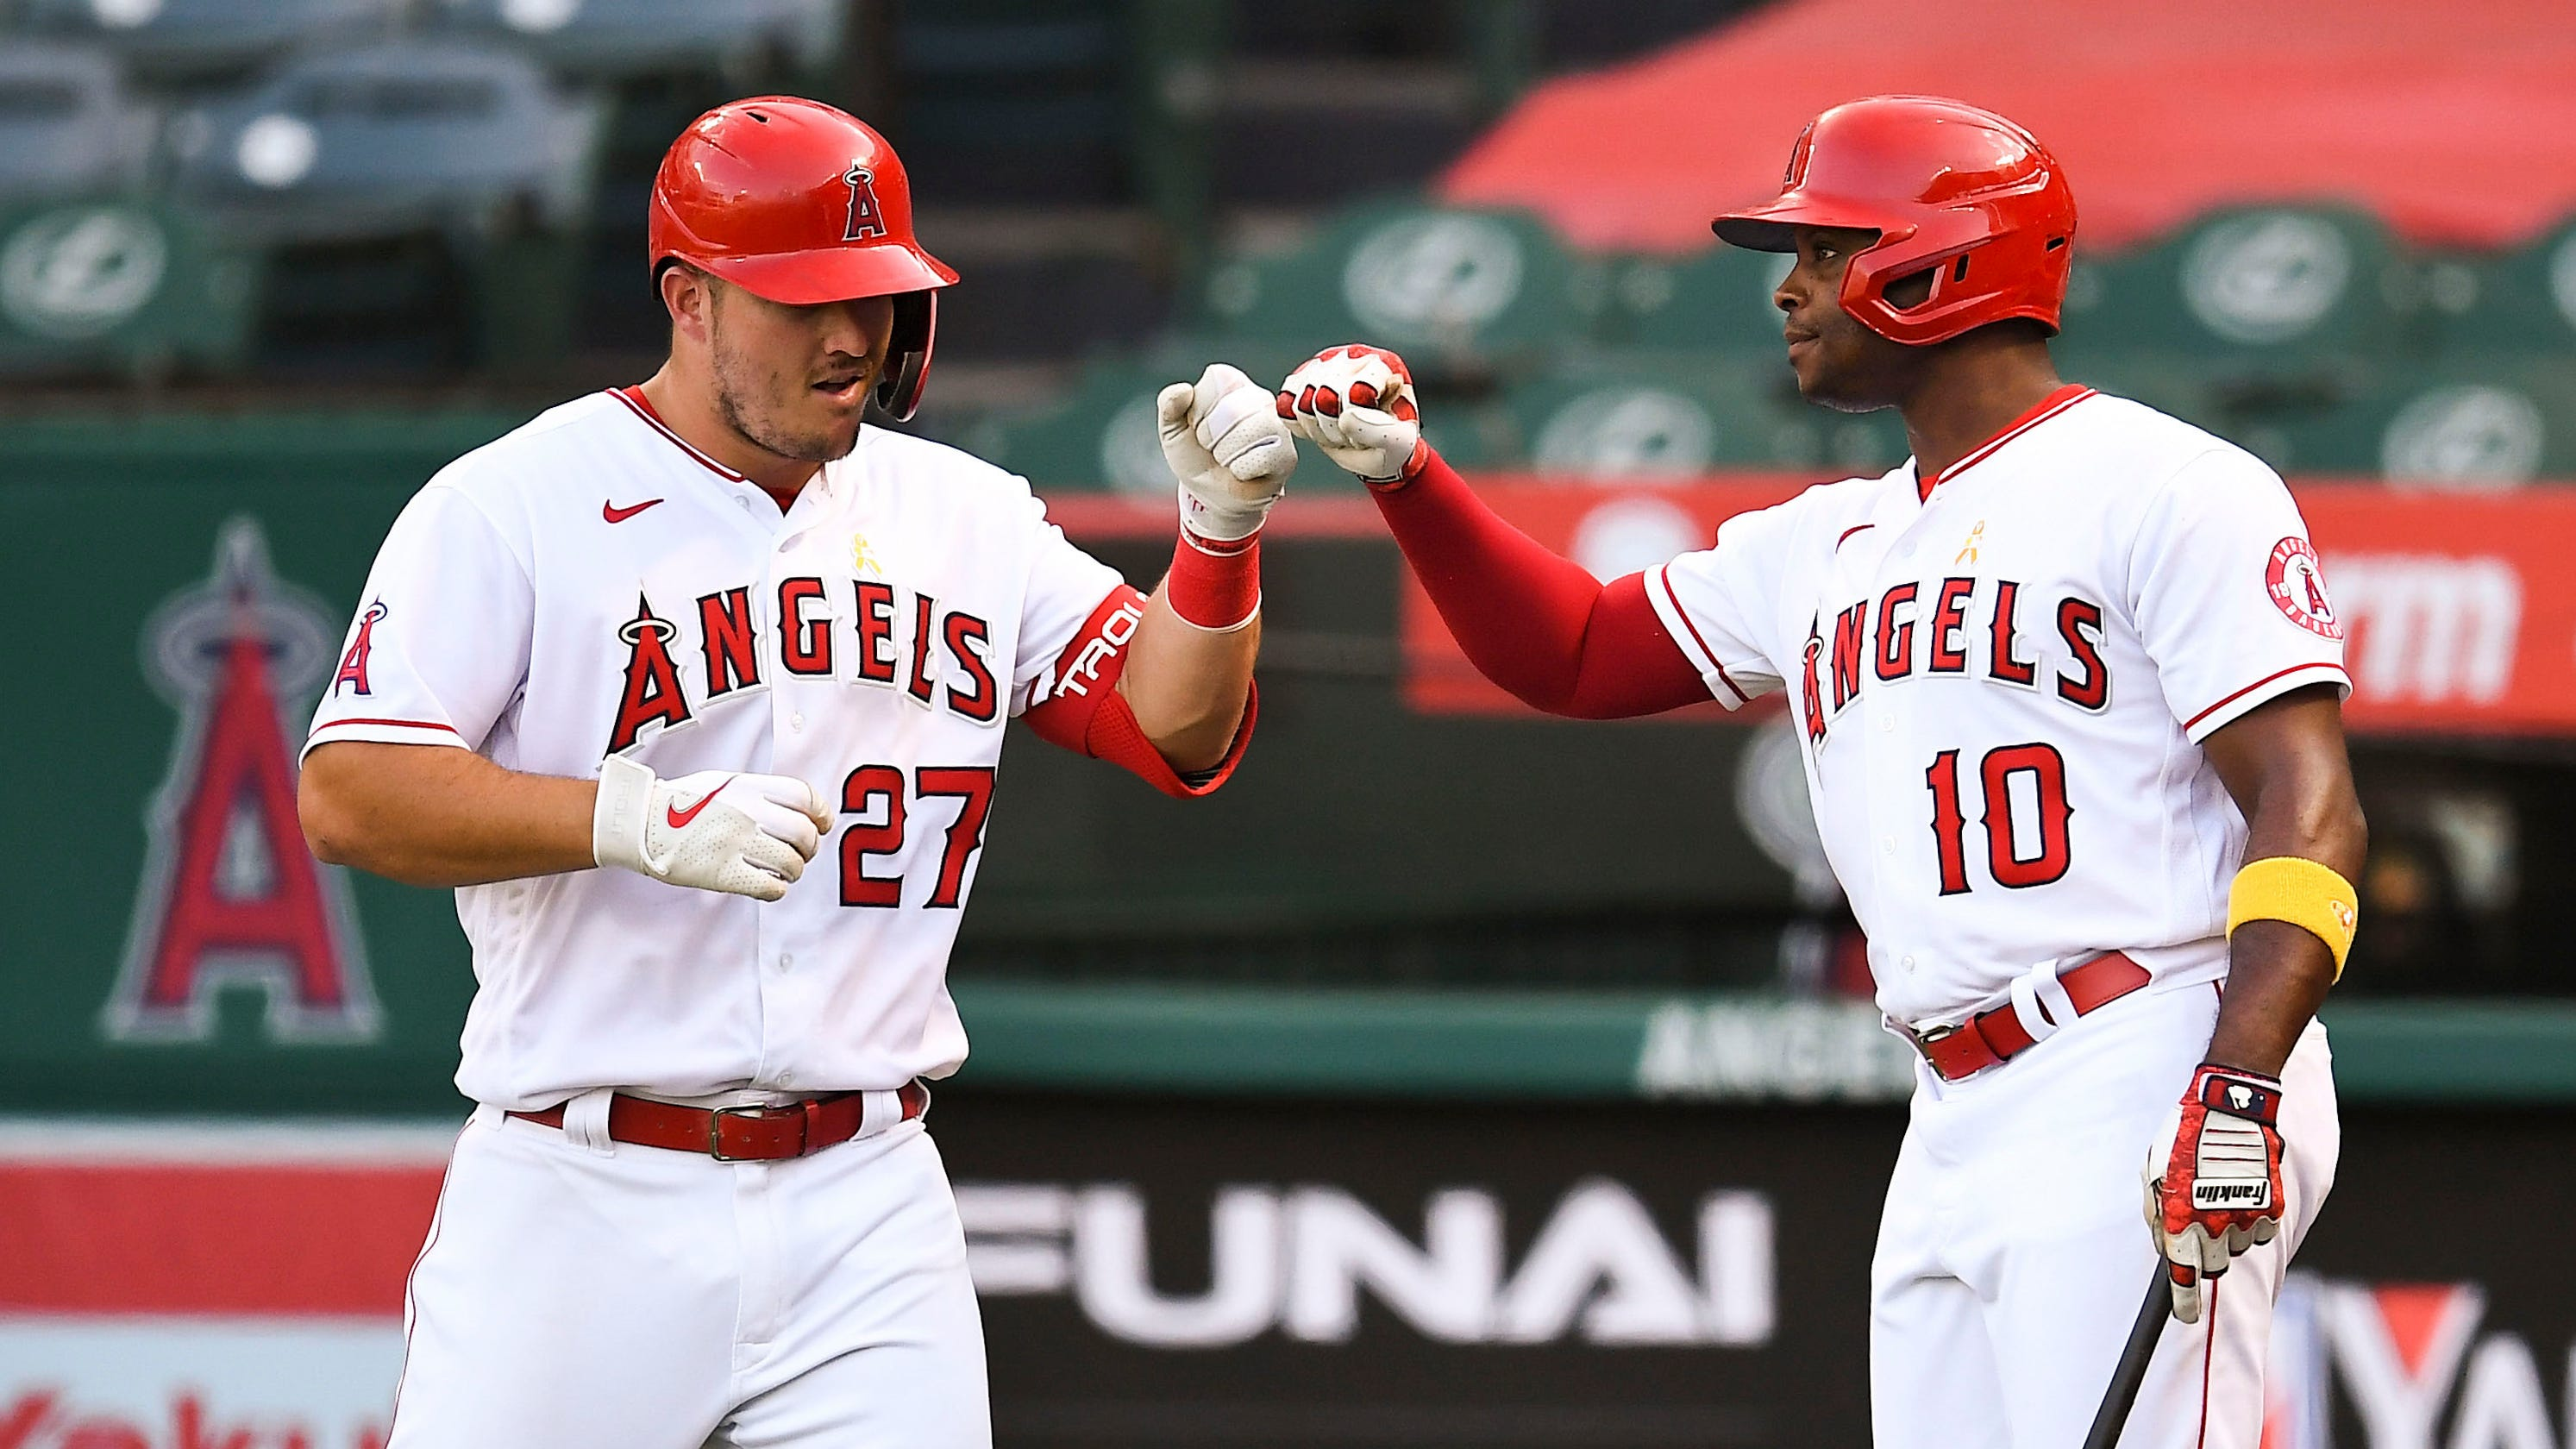 Mike Trout becomes Angels' all-time home run leader after hitting No. 300